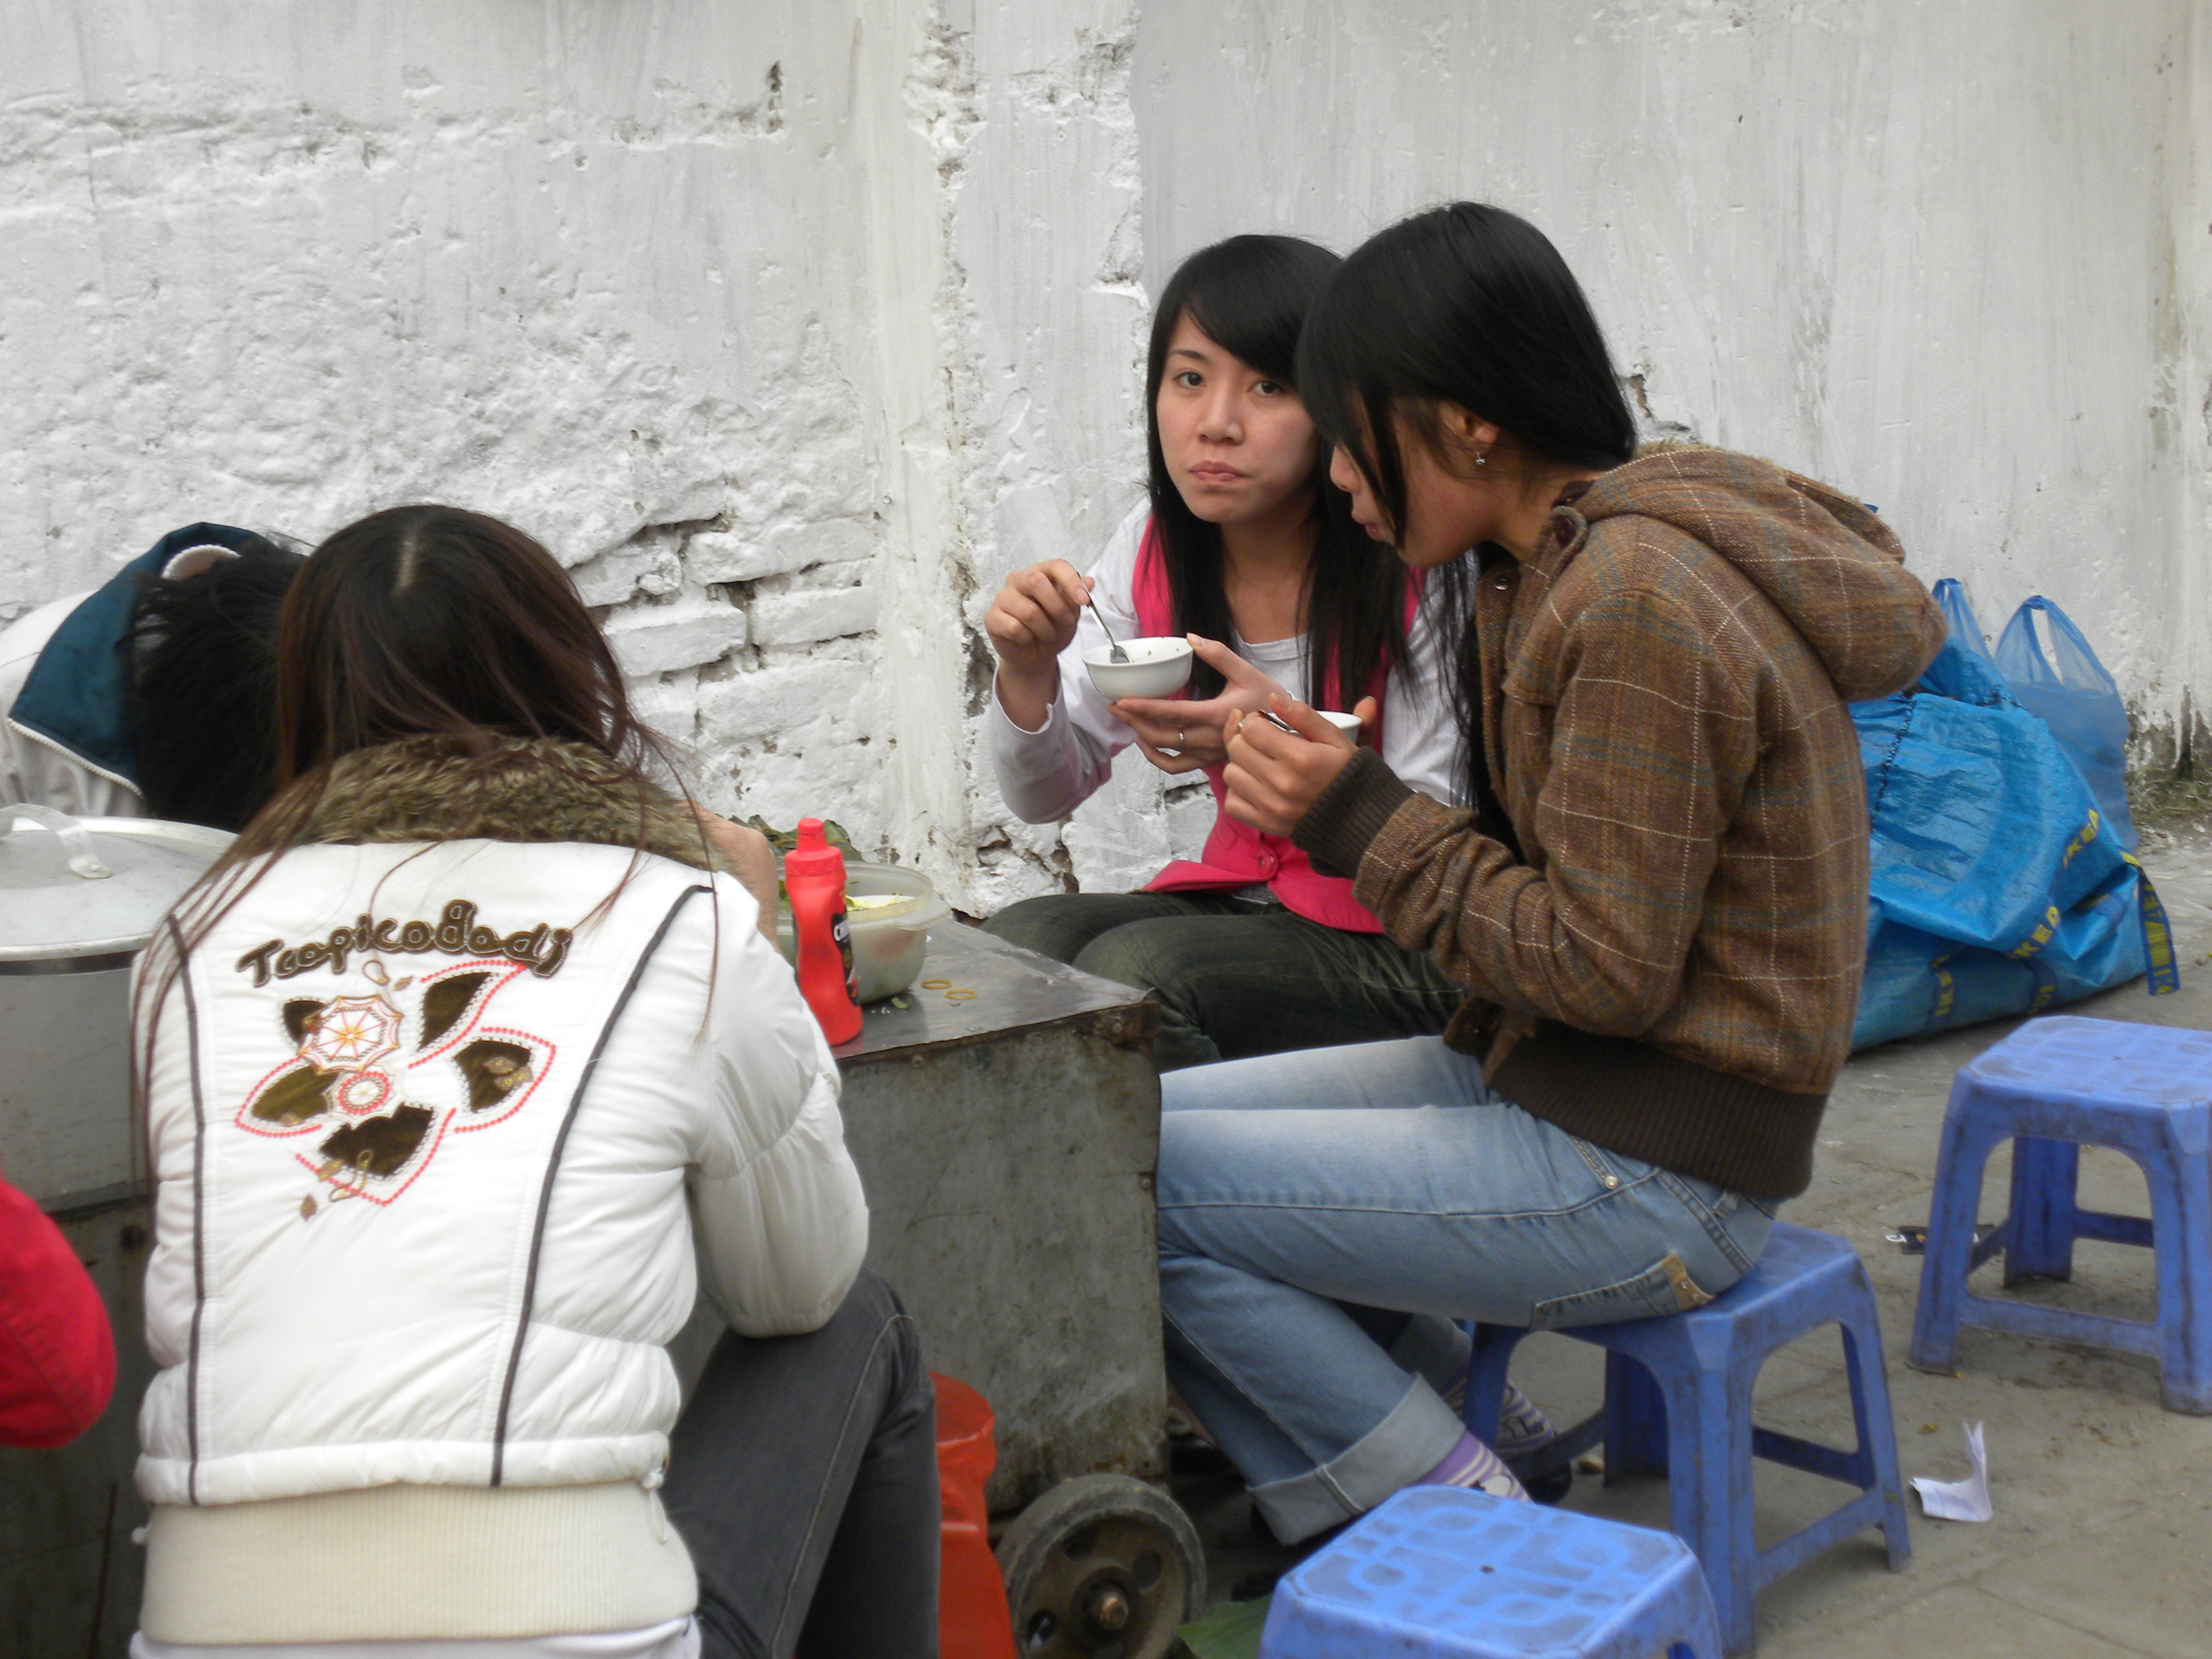 A group of young girls gather in Hanoi. Scores of young women are lured by prospects of better paying jobs abroad